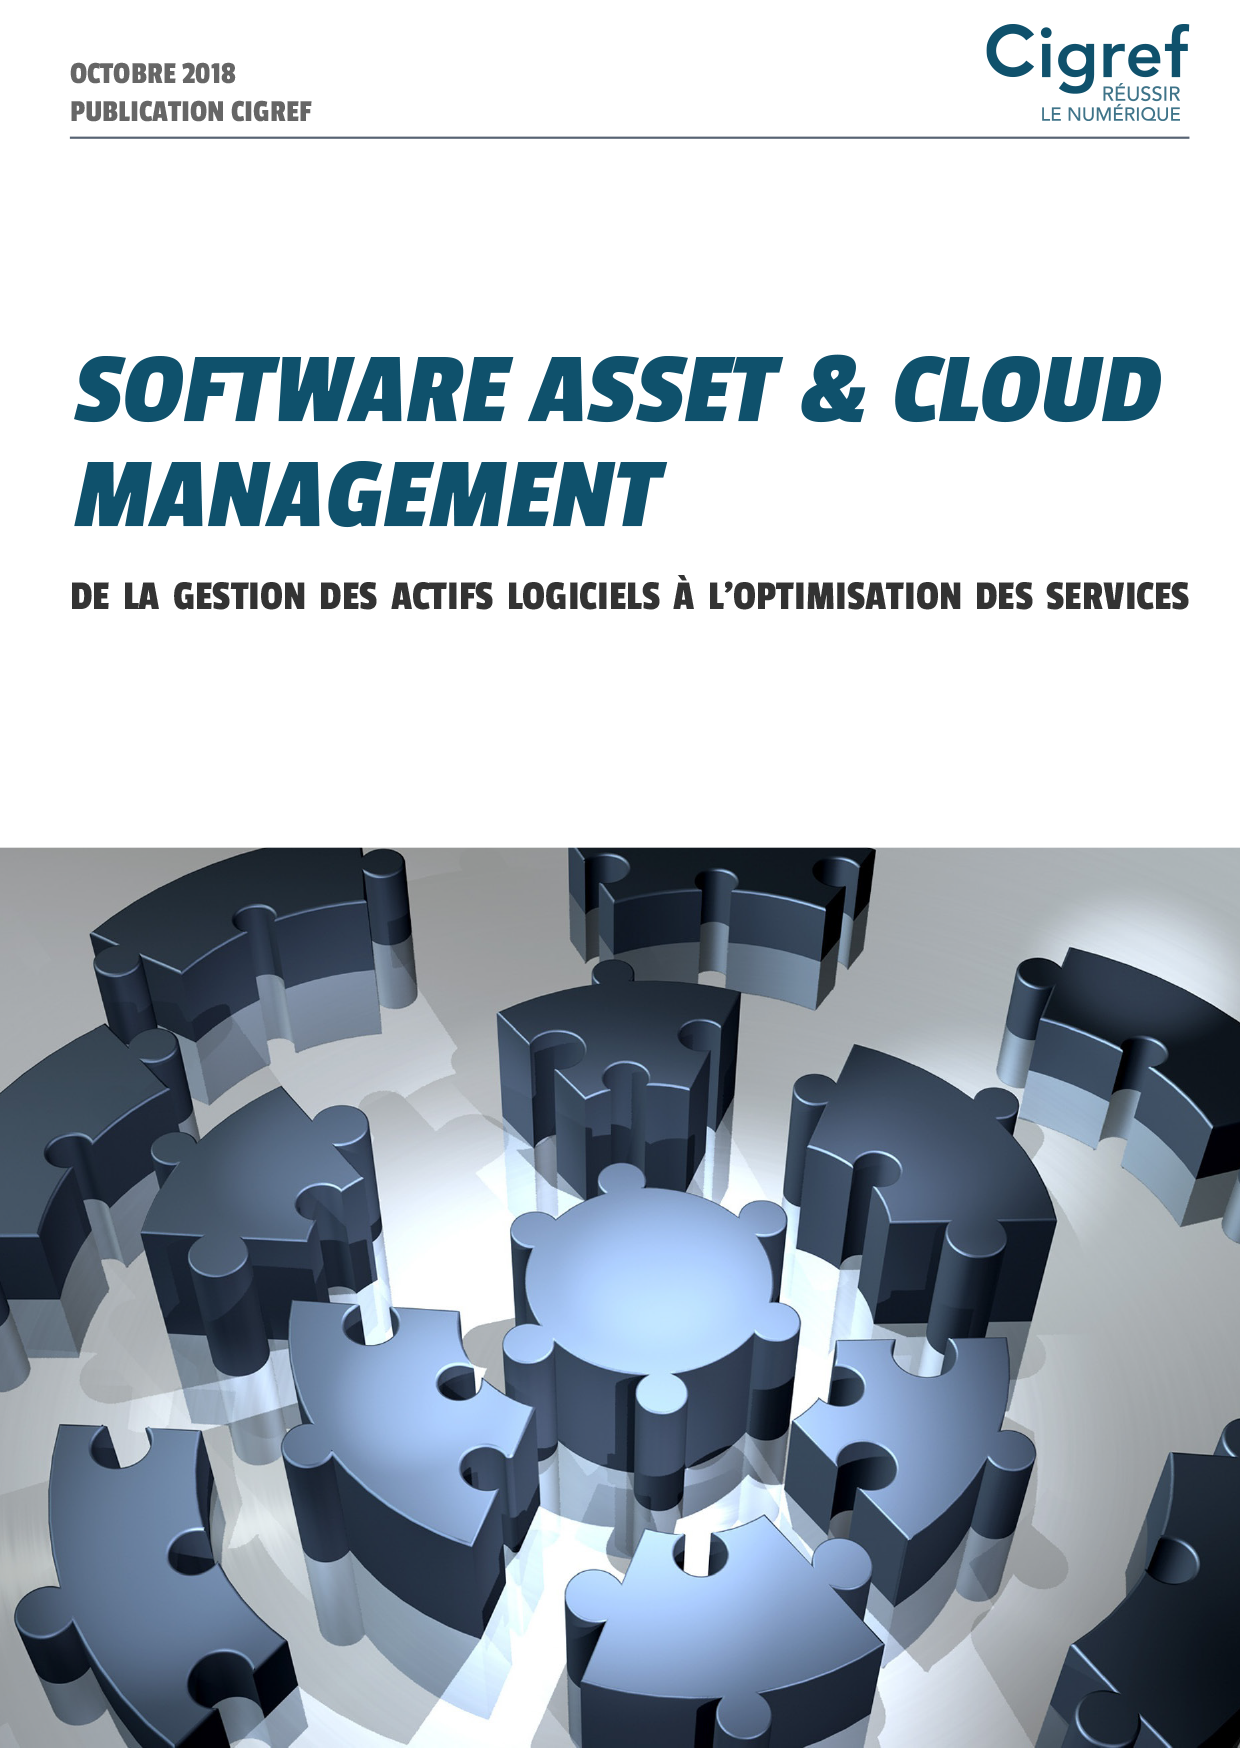 Publication Cigref Software Asset & Cloud Management